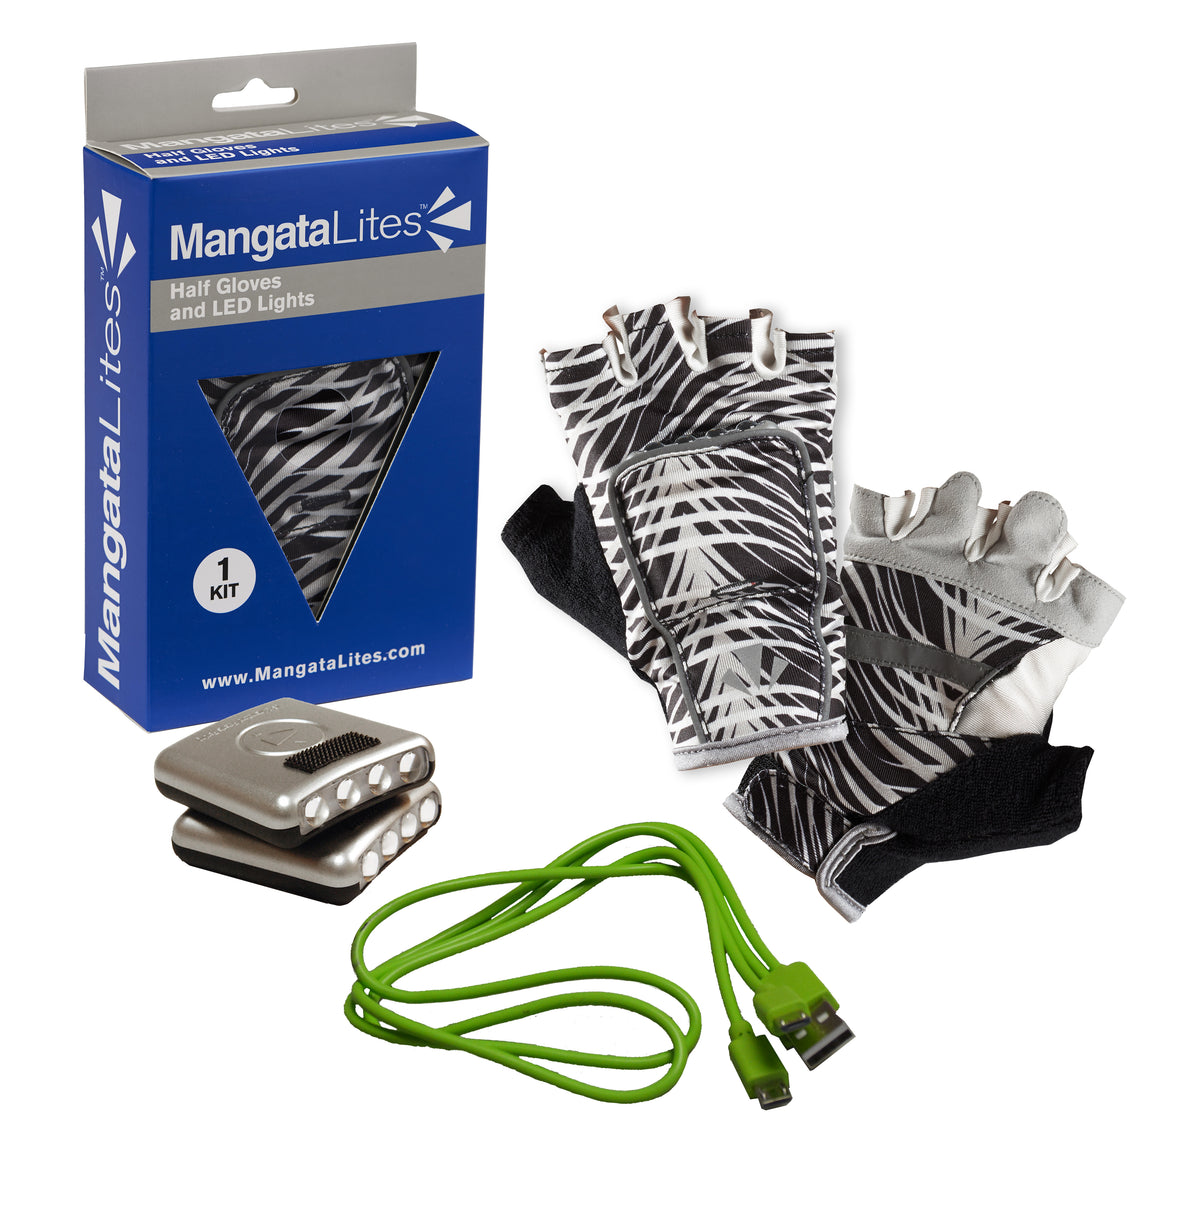 MangataLites Black & White Wave Half Gloves Kit (Lights included) - Mangata